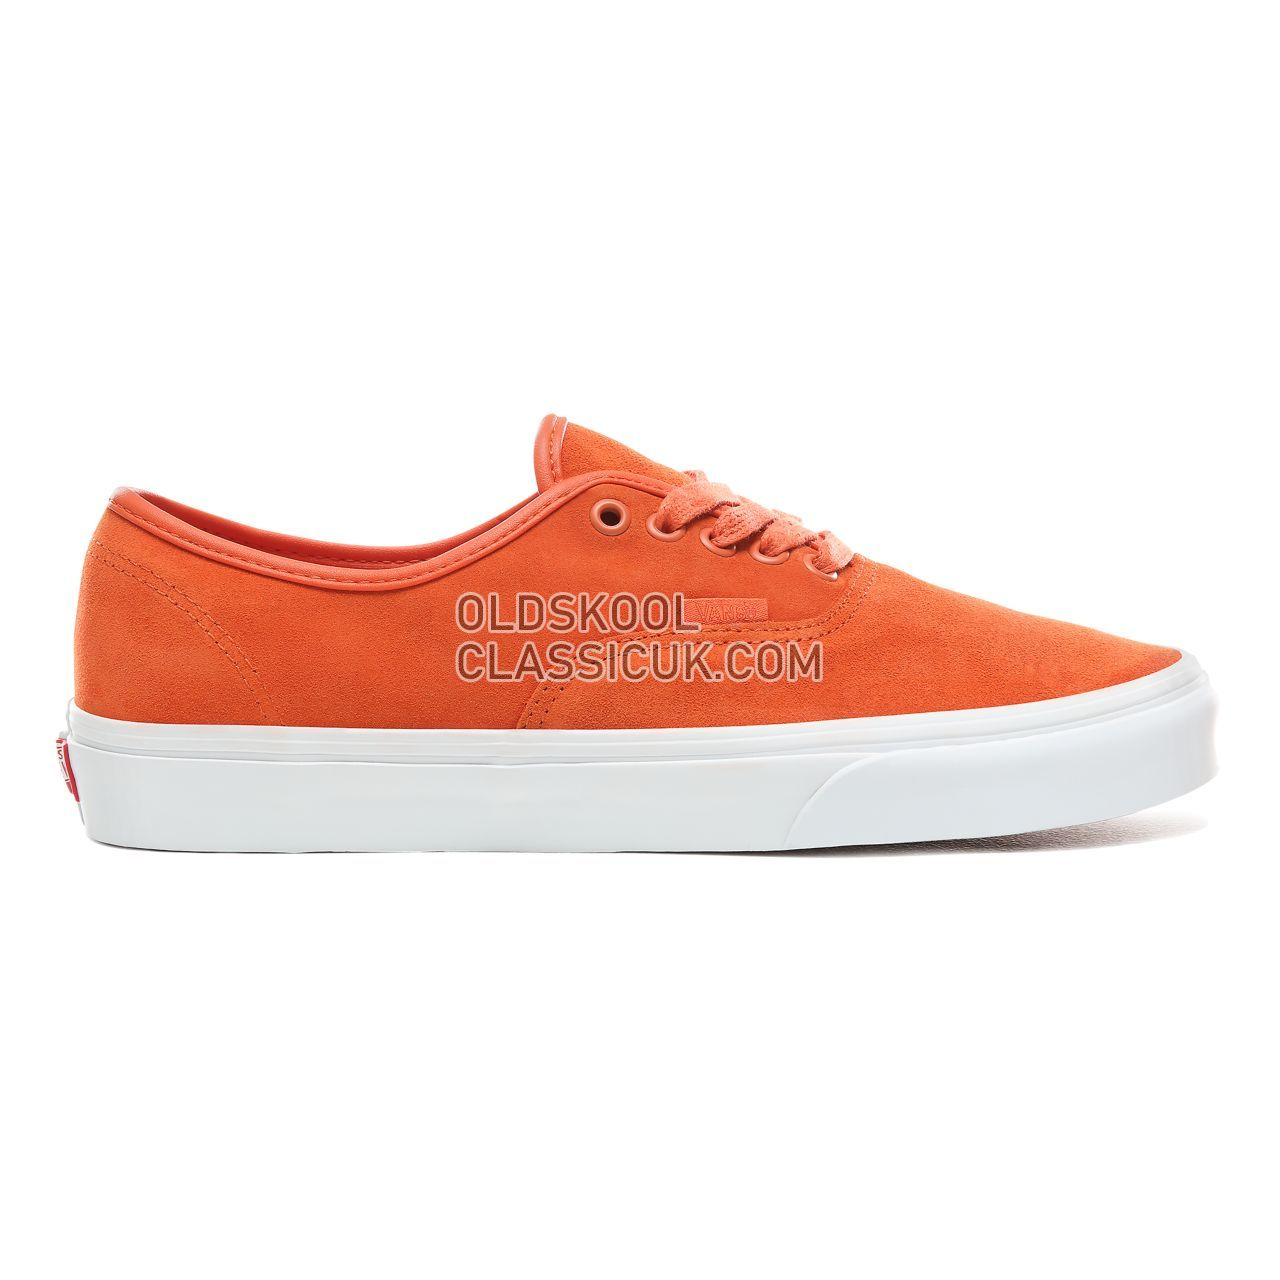 Vans Soft Suede Authentic Sneakers Mens (Soft Suede) Koi/True White VN0A38EMVKF Shoes